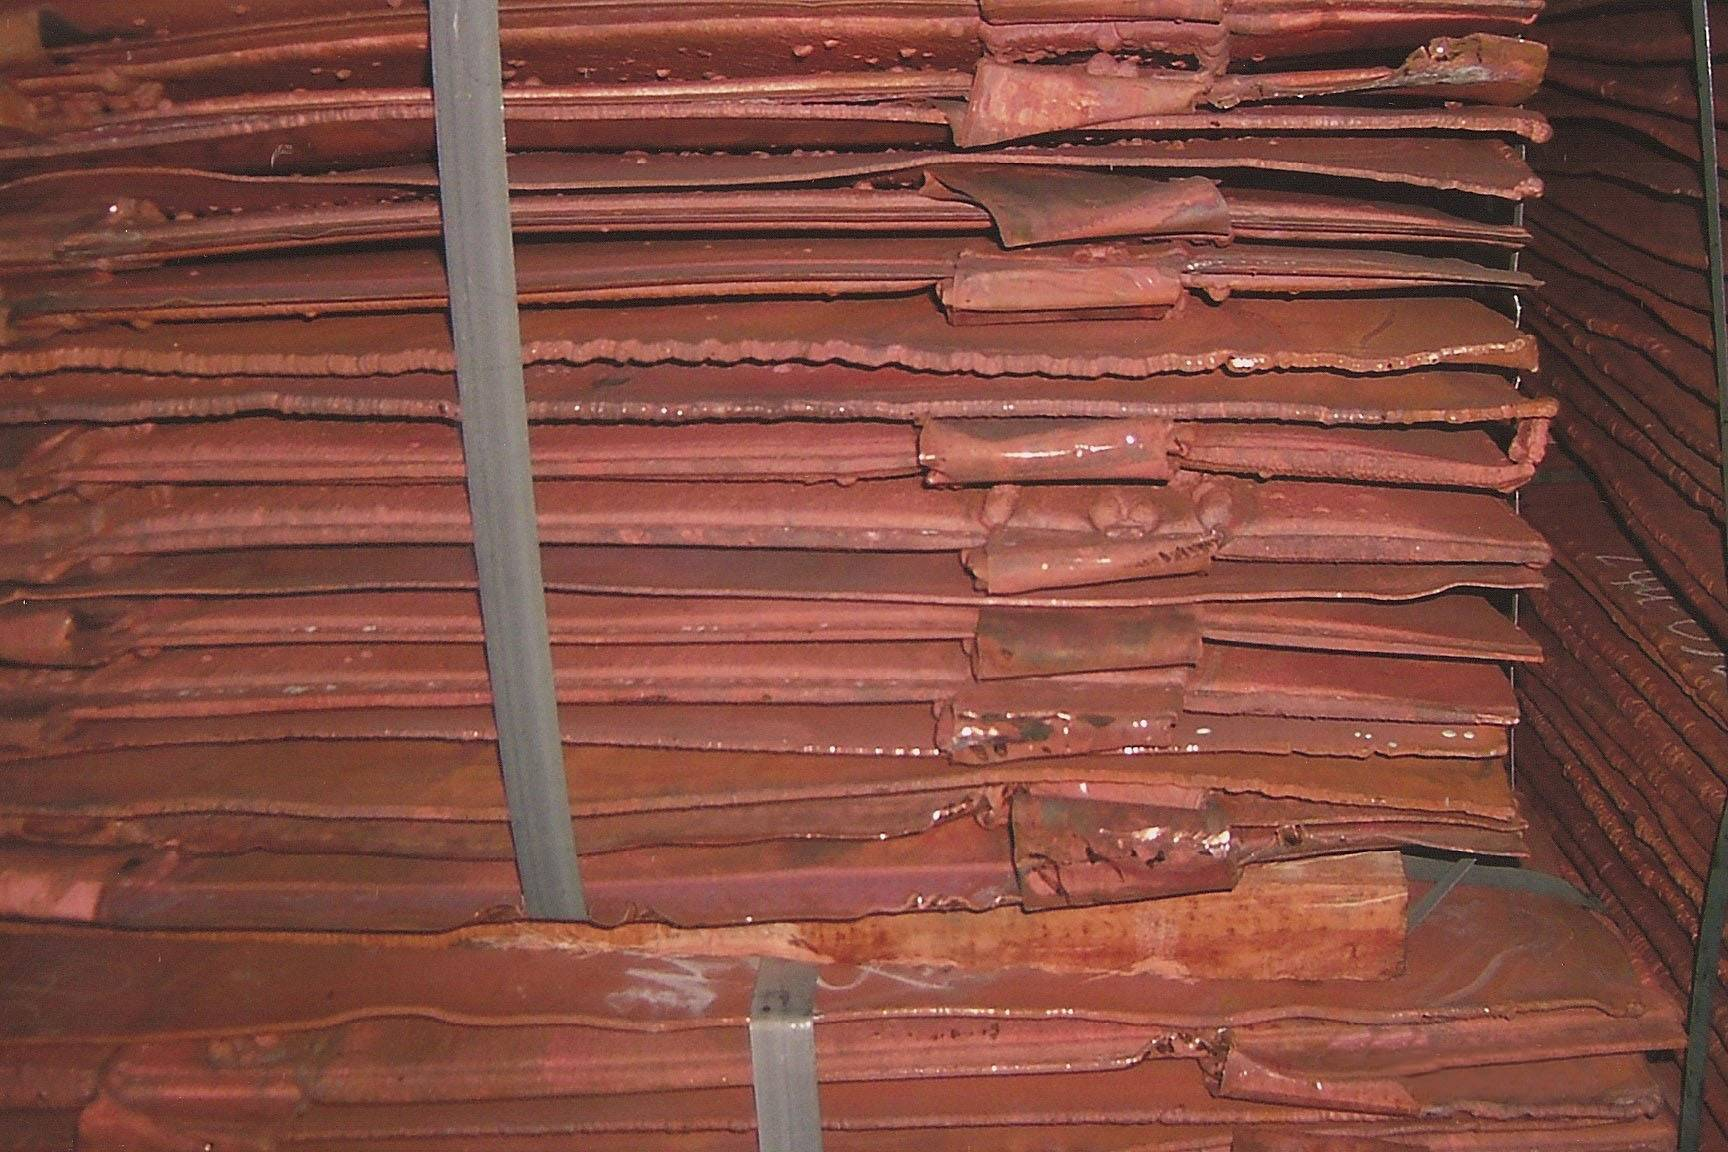 600 MT Electrolytic Copper Cathodes[cu] 99.98%+/-1 ready for export